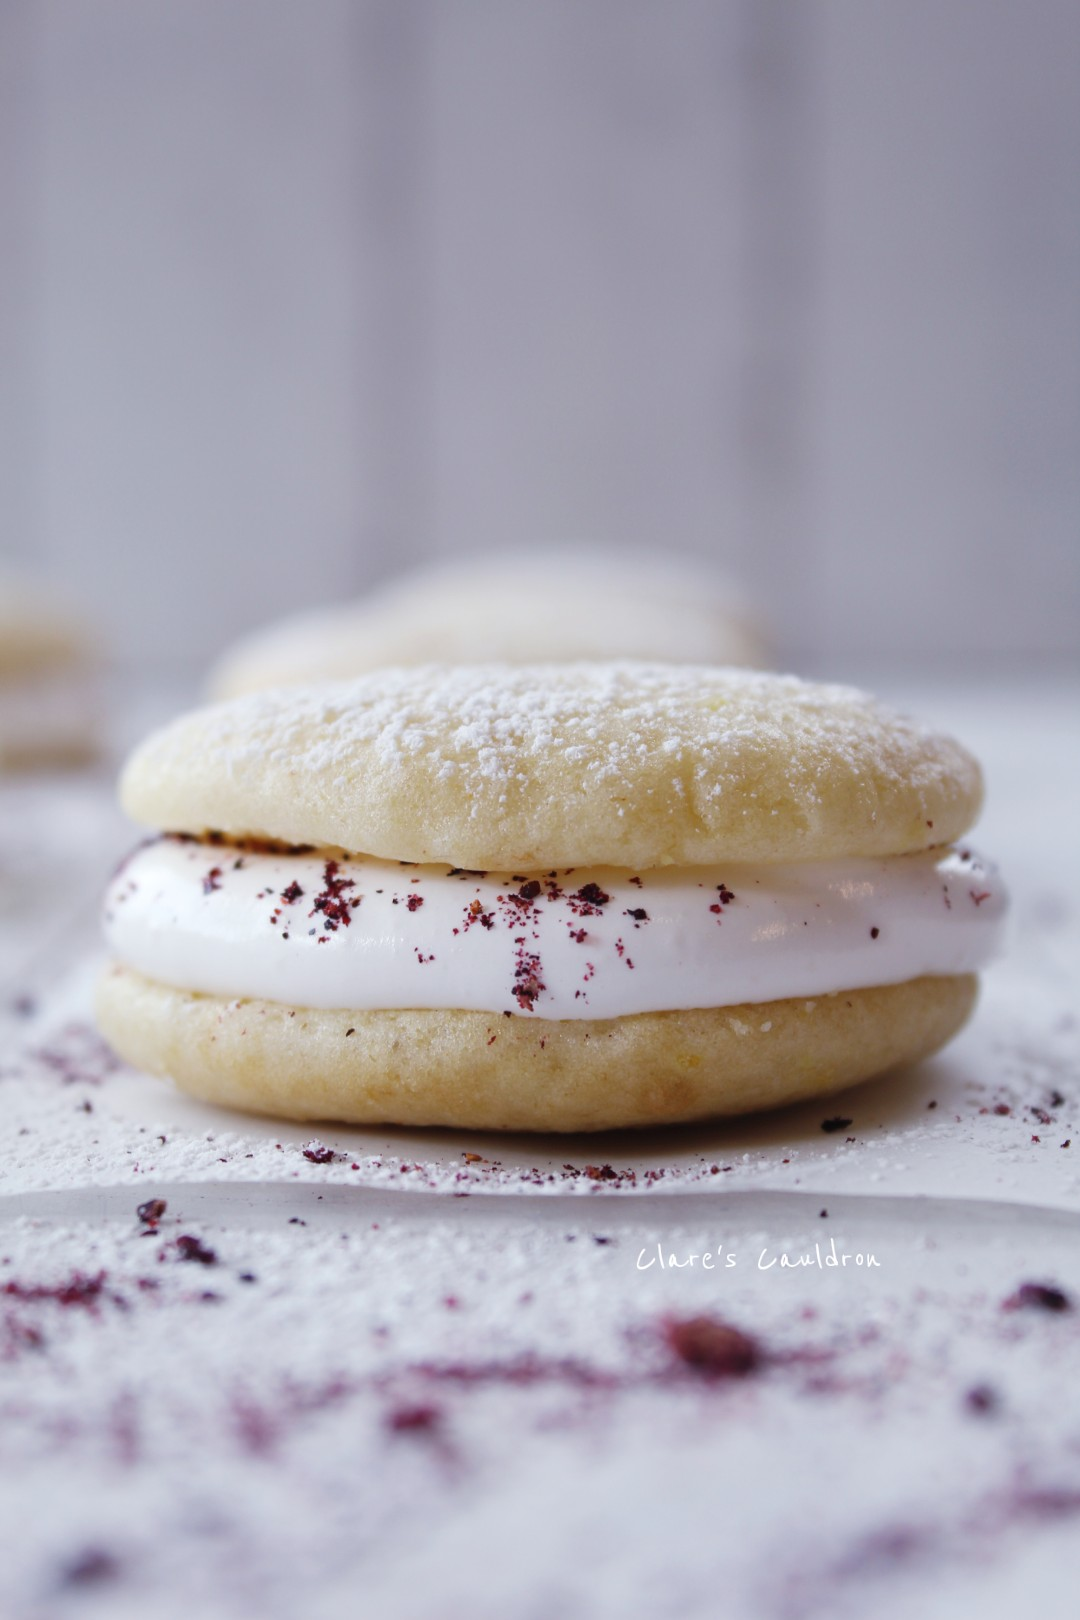 Lets Bake Some Intolerant Whoopie Pies